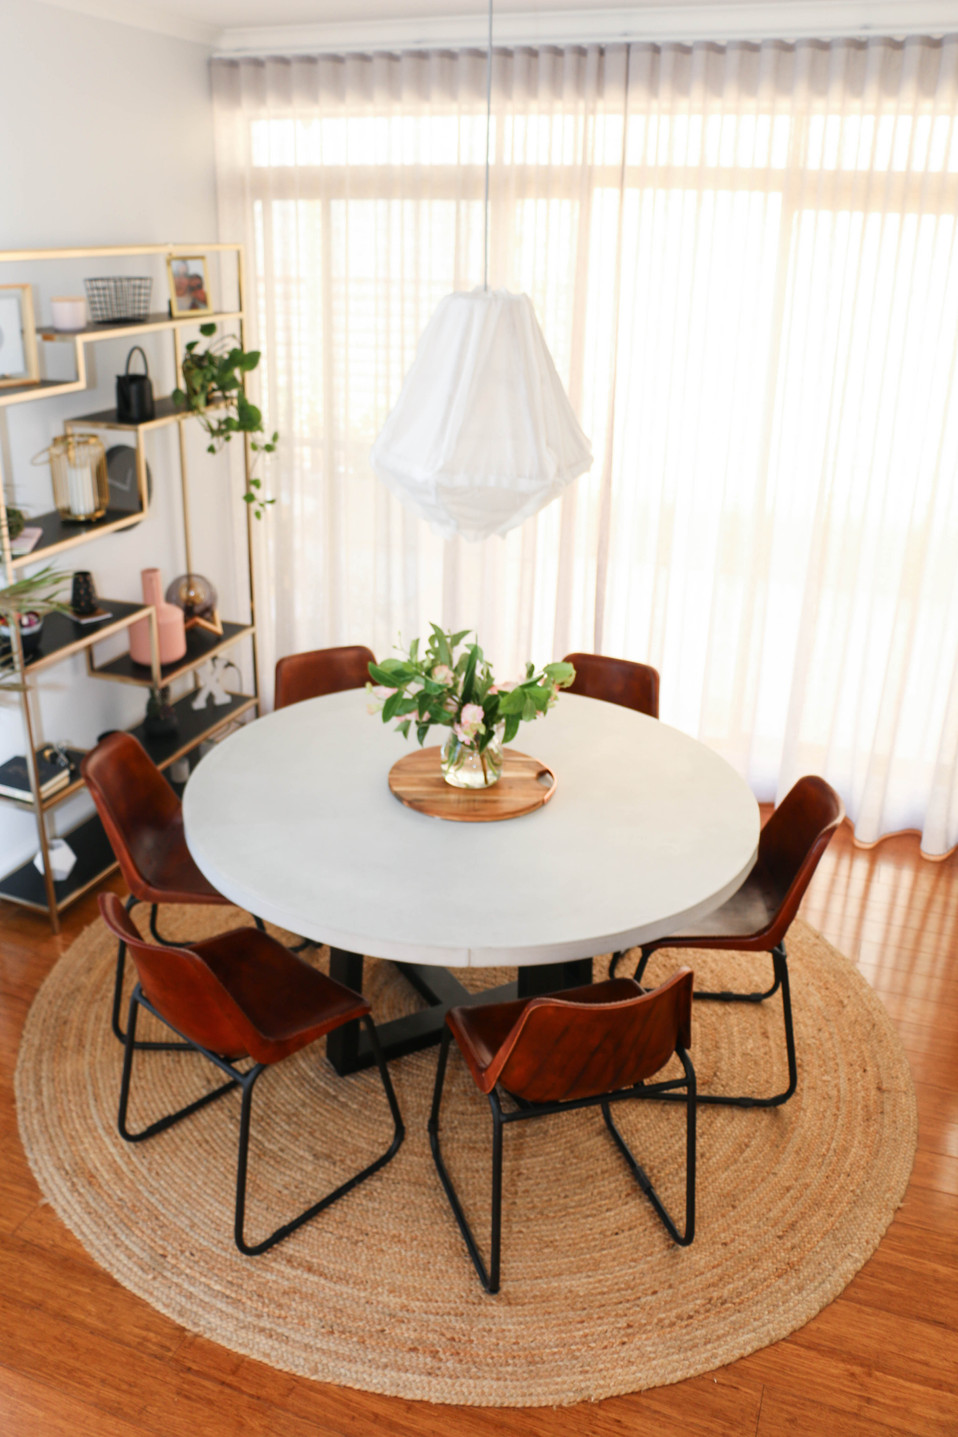 manly modern industrial dining room - concrete table, leather chairs